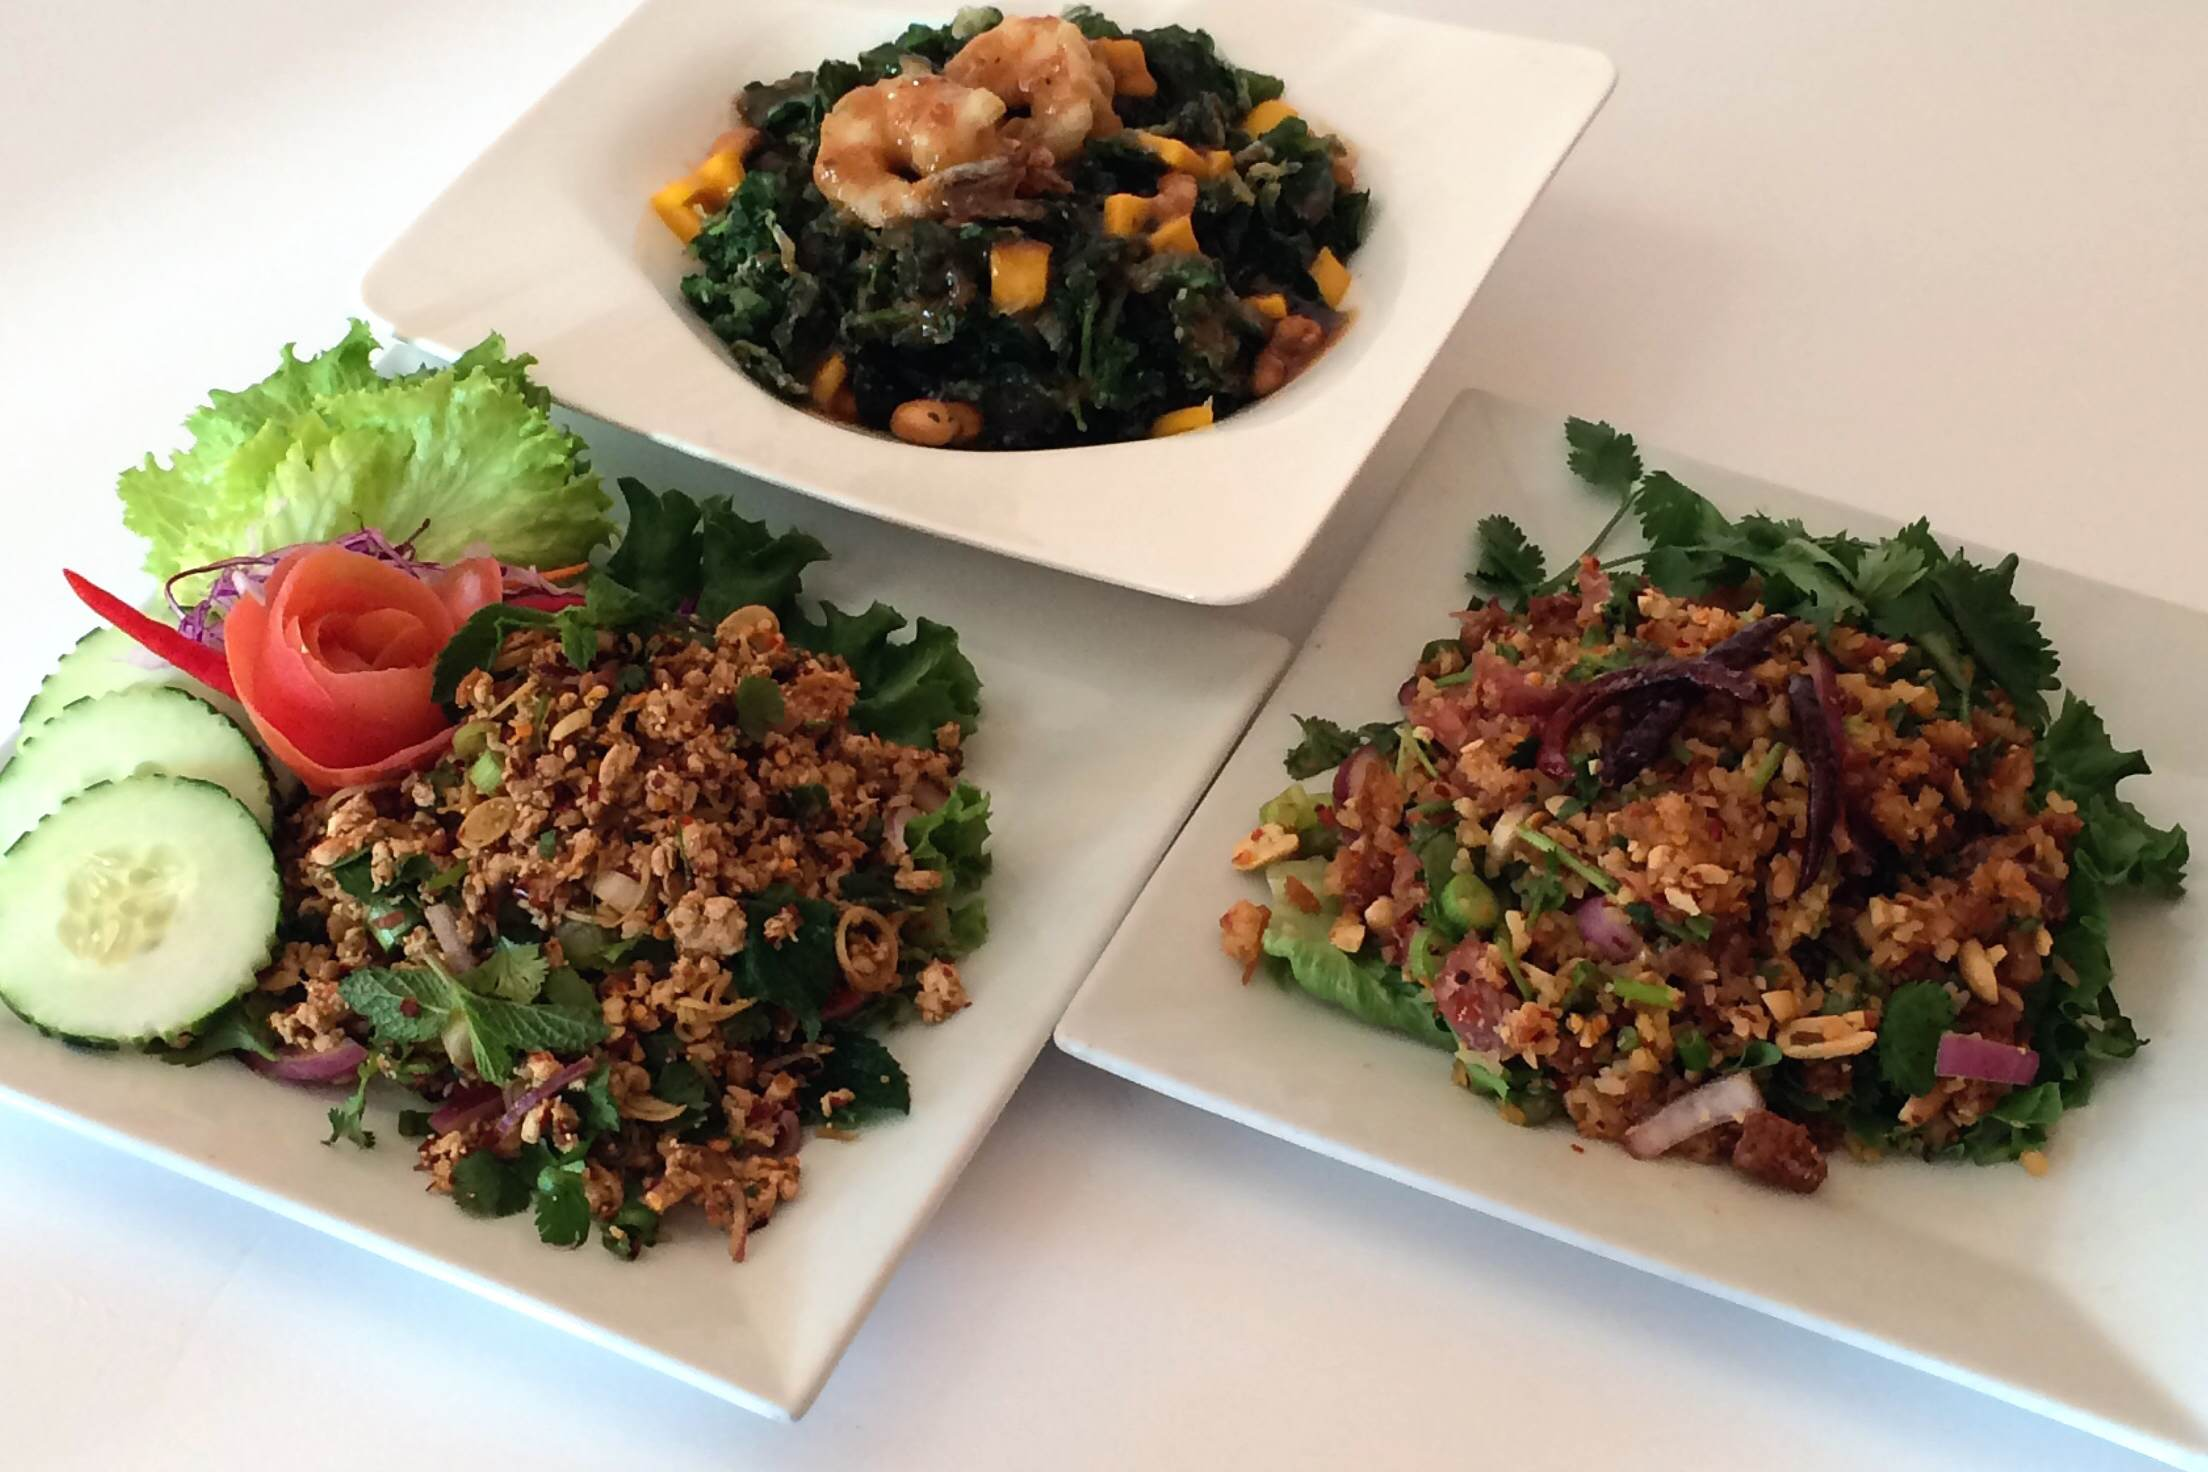 Laotian Cuisine from Bangkok Golden in D.C.  | Credit:  Deanna Kingsley